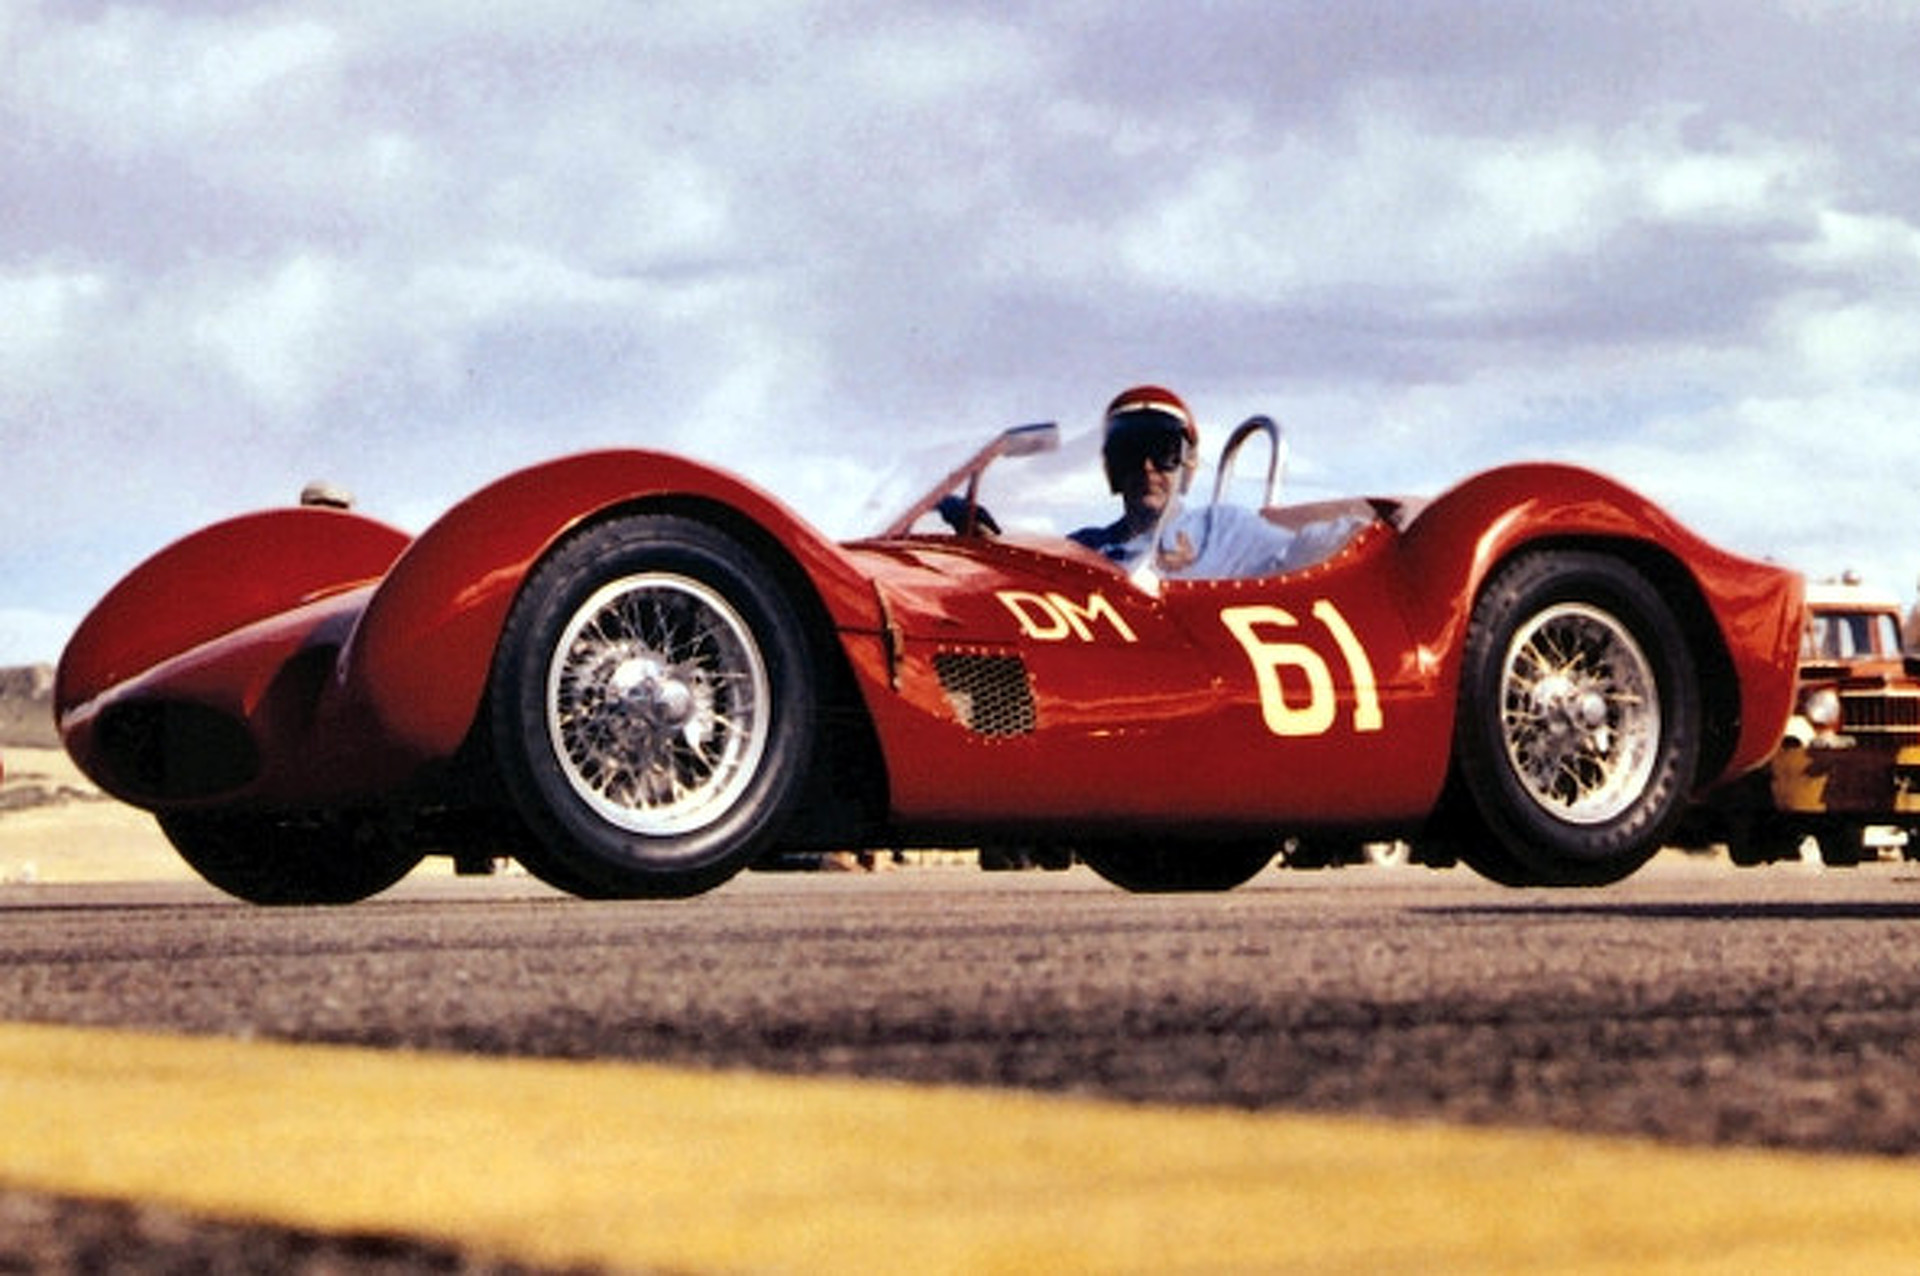 Celebrating 100 Years of Maserati Motorsport in Photos